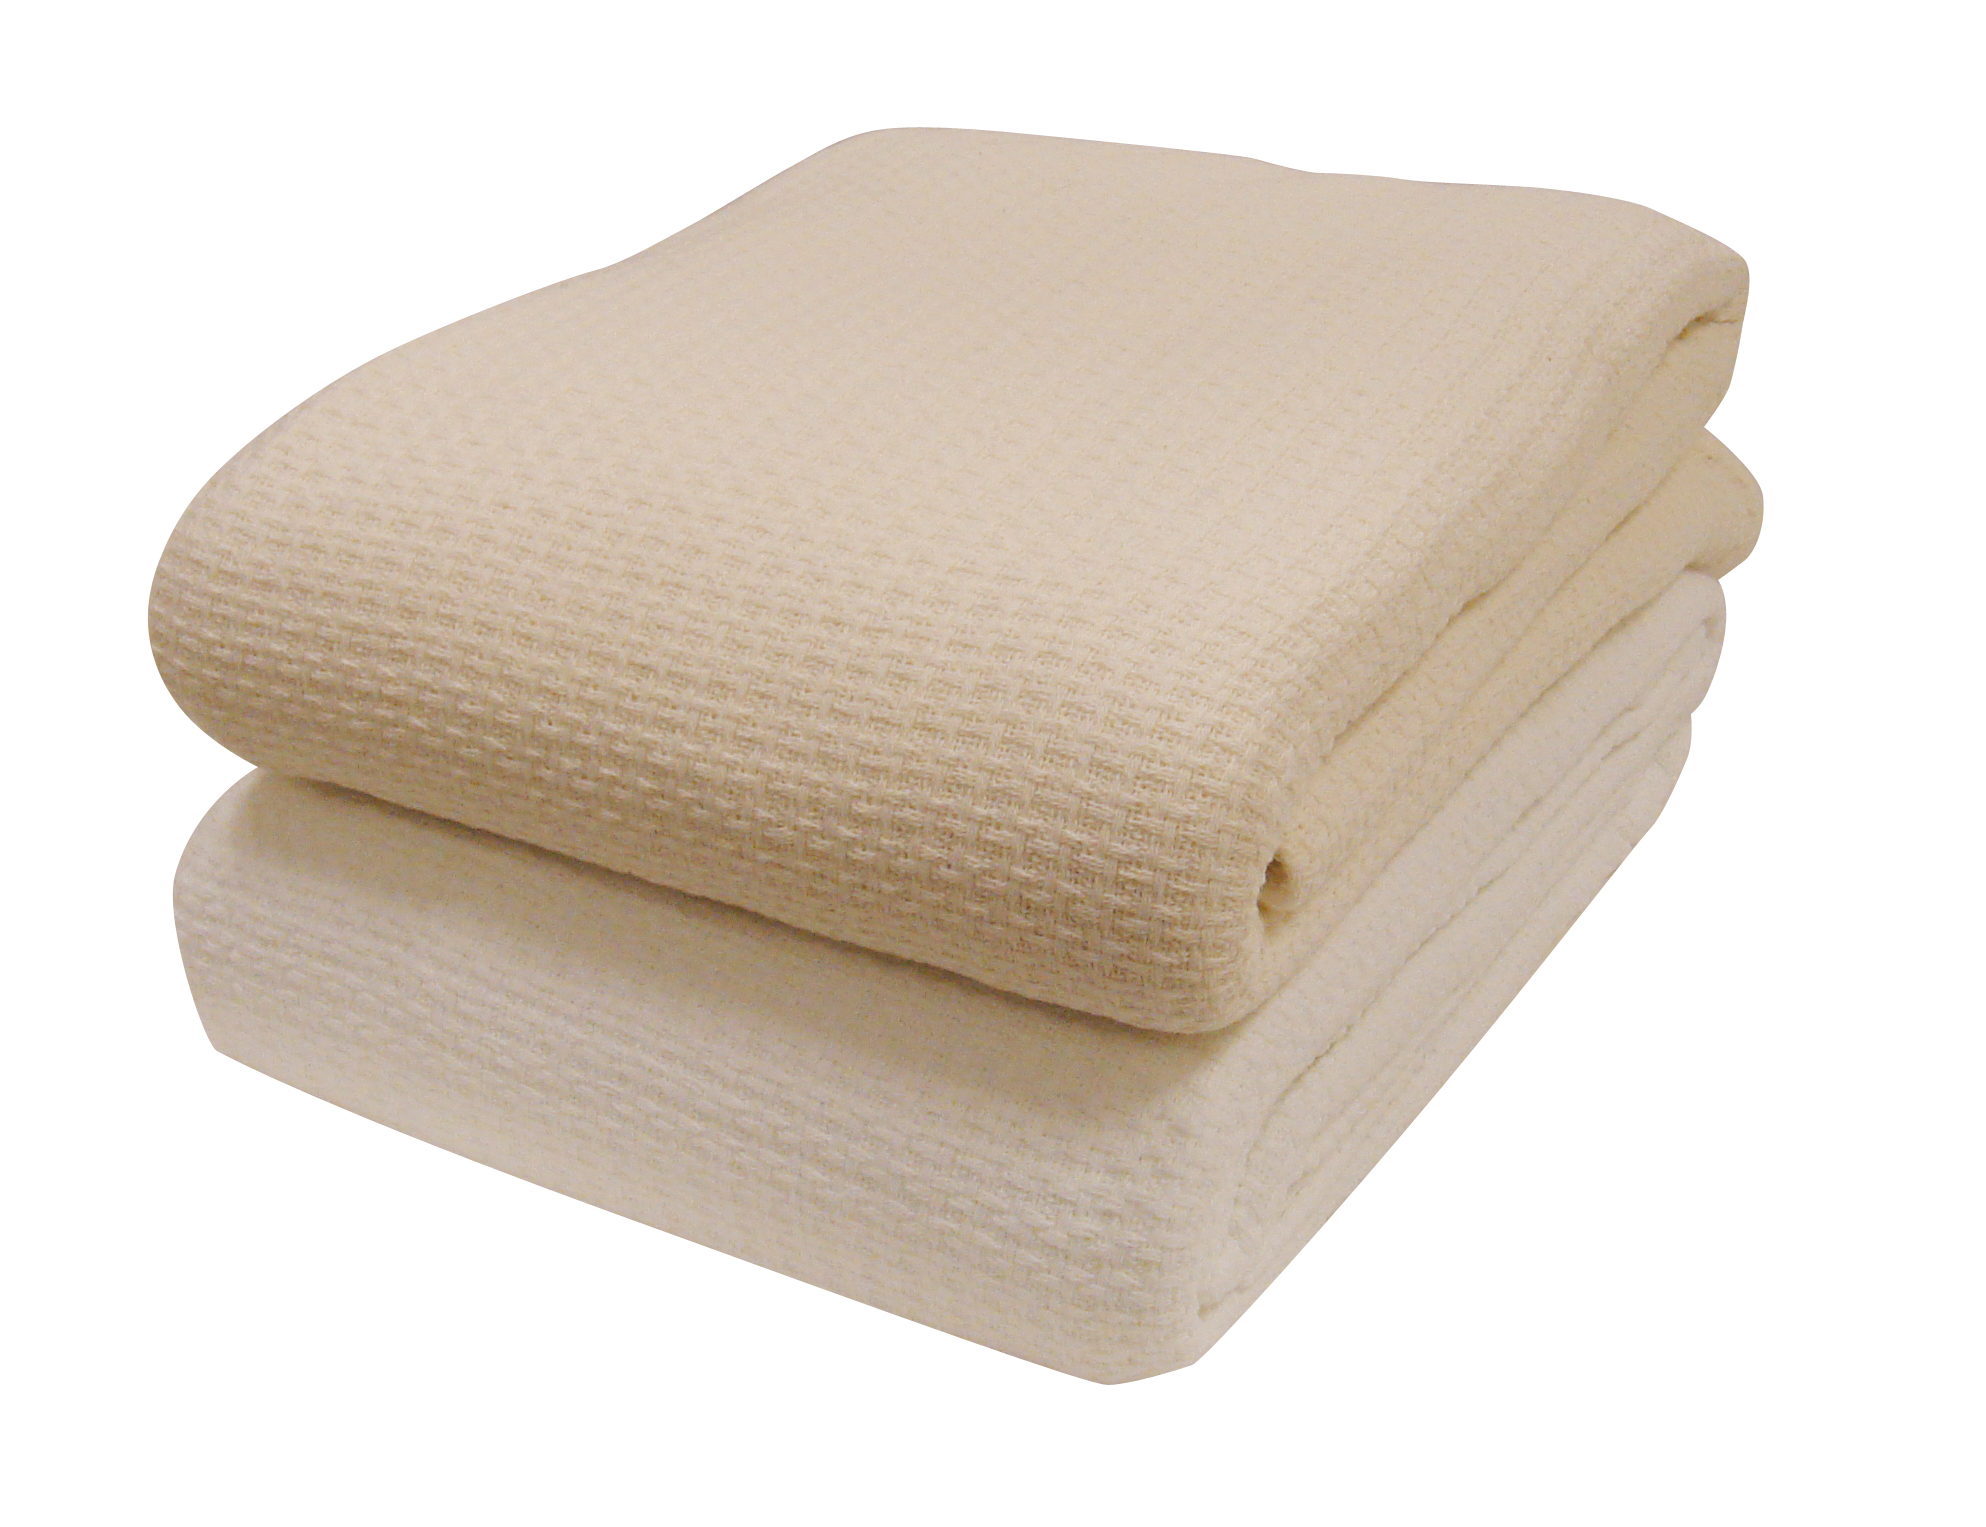 Sheets, Blankets & Accessories